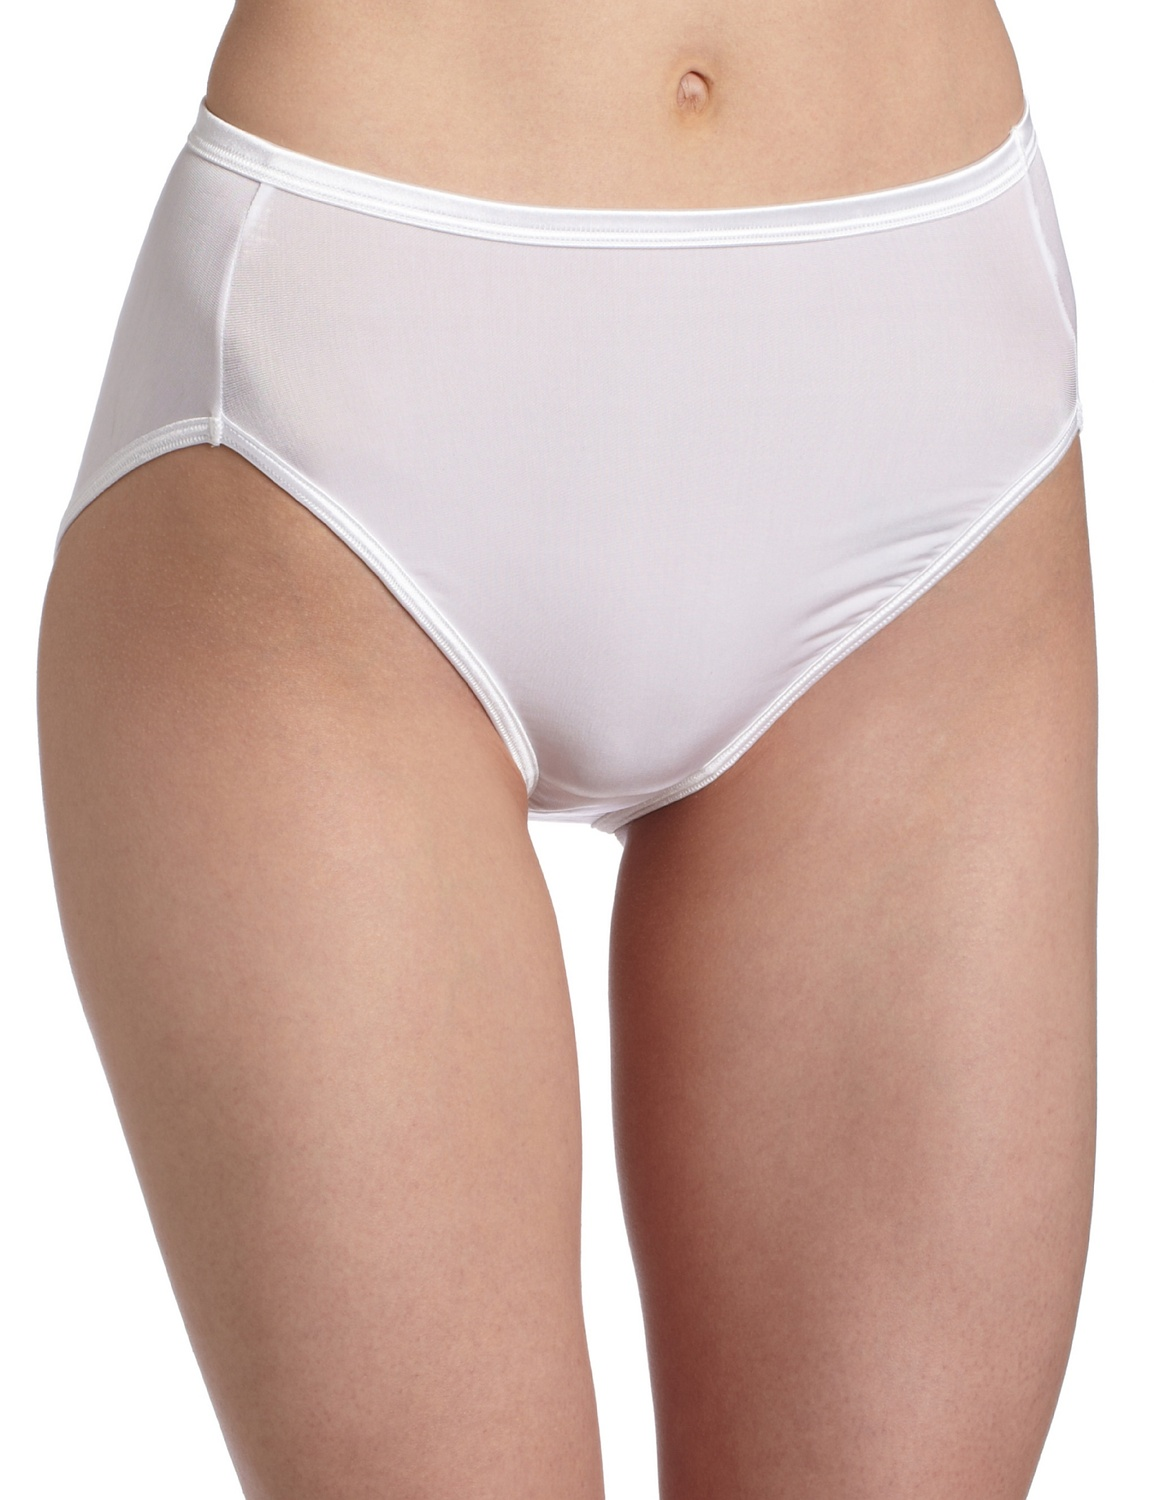 Vanity Fair Womens Body Shine Illumination Hi Cut Panty, 7, Whirlwind Print